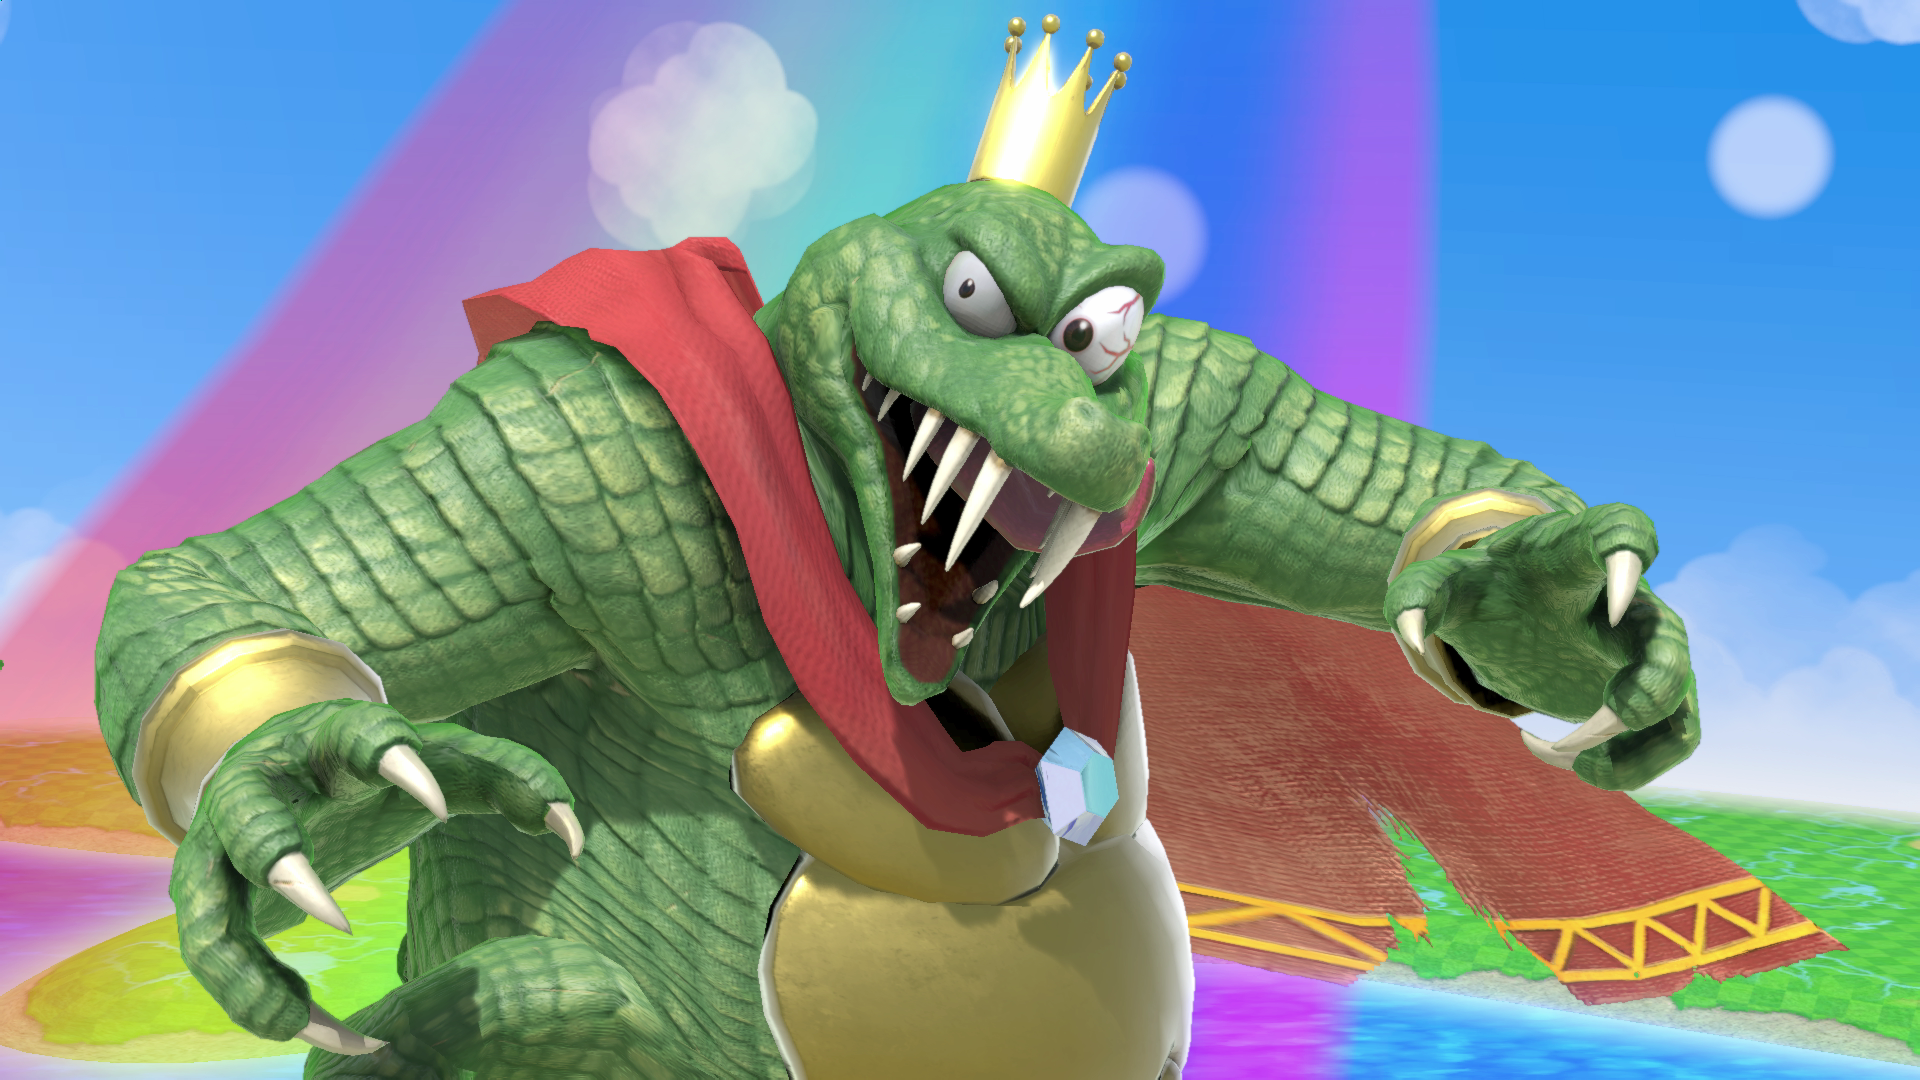 Smash Bros. Ultimate - Version 1.1 full patch notes